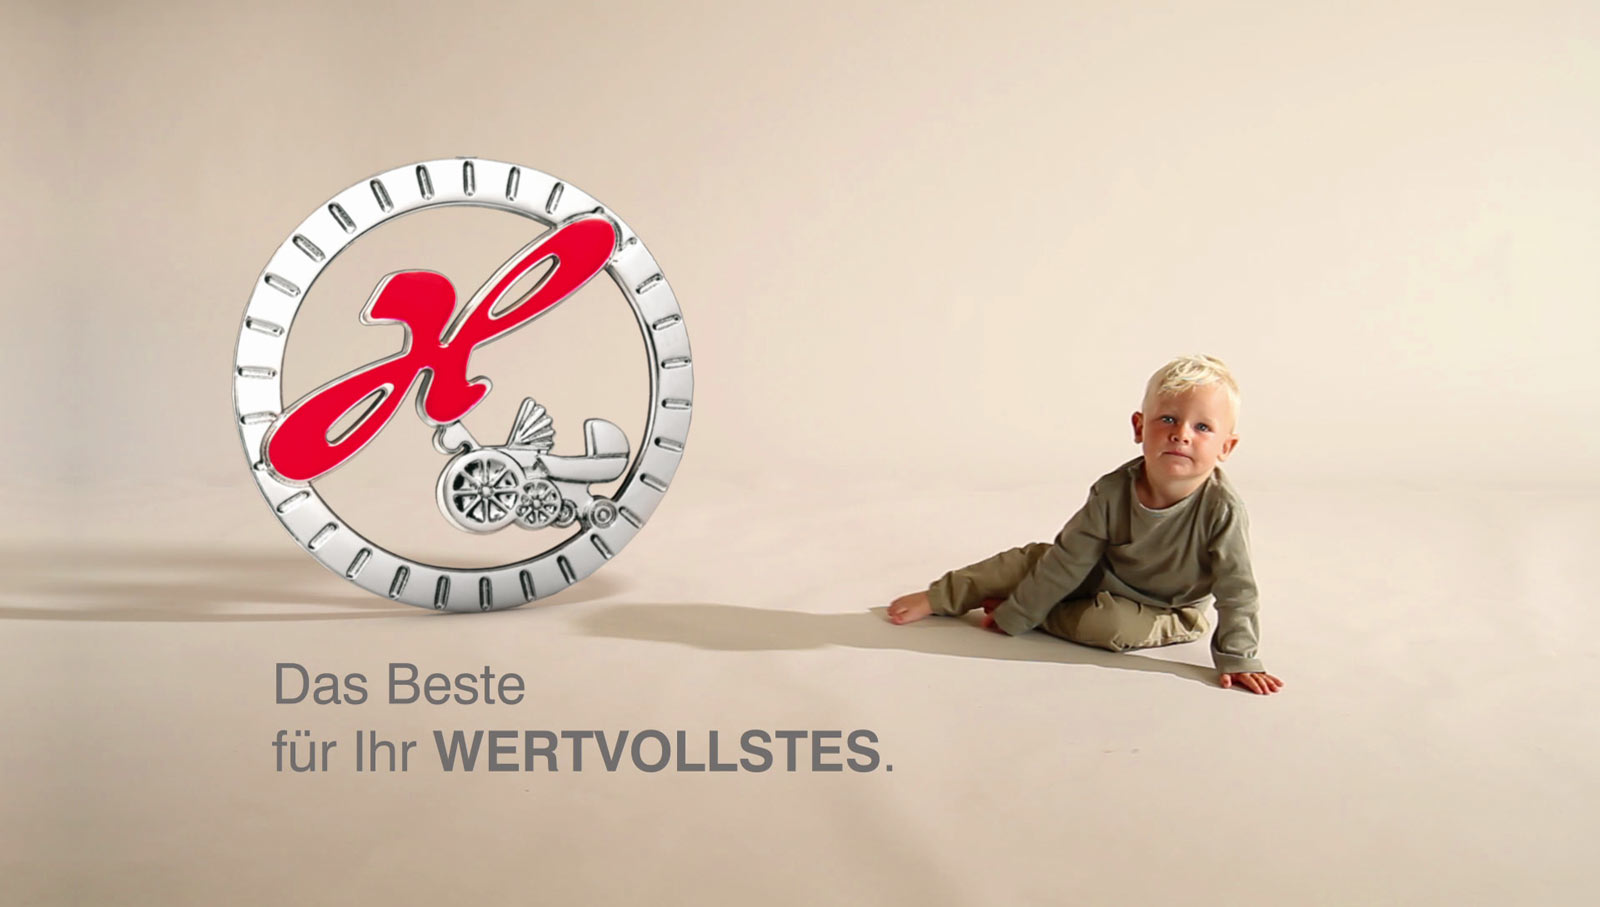 Hartan Kinderwagen Produktion Produktvideo - Logo Animation Hartan Kinderwagen